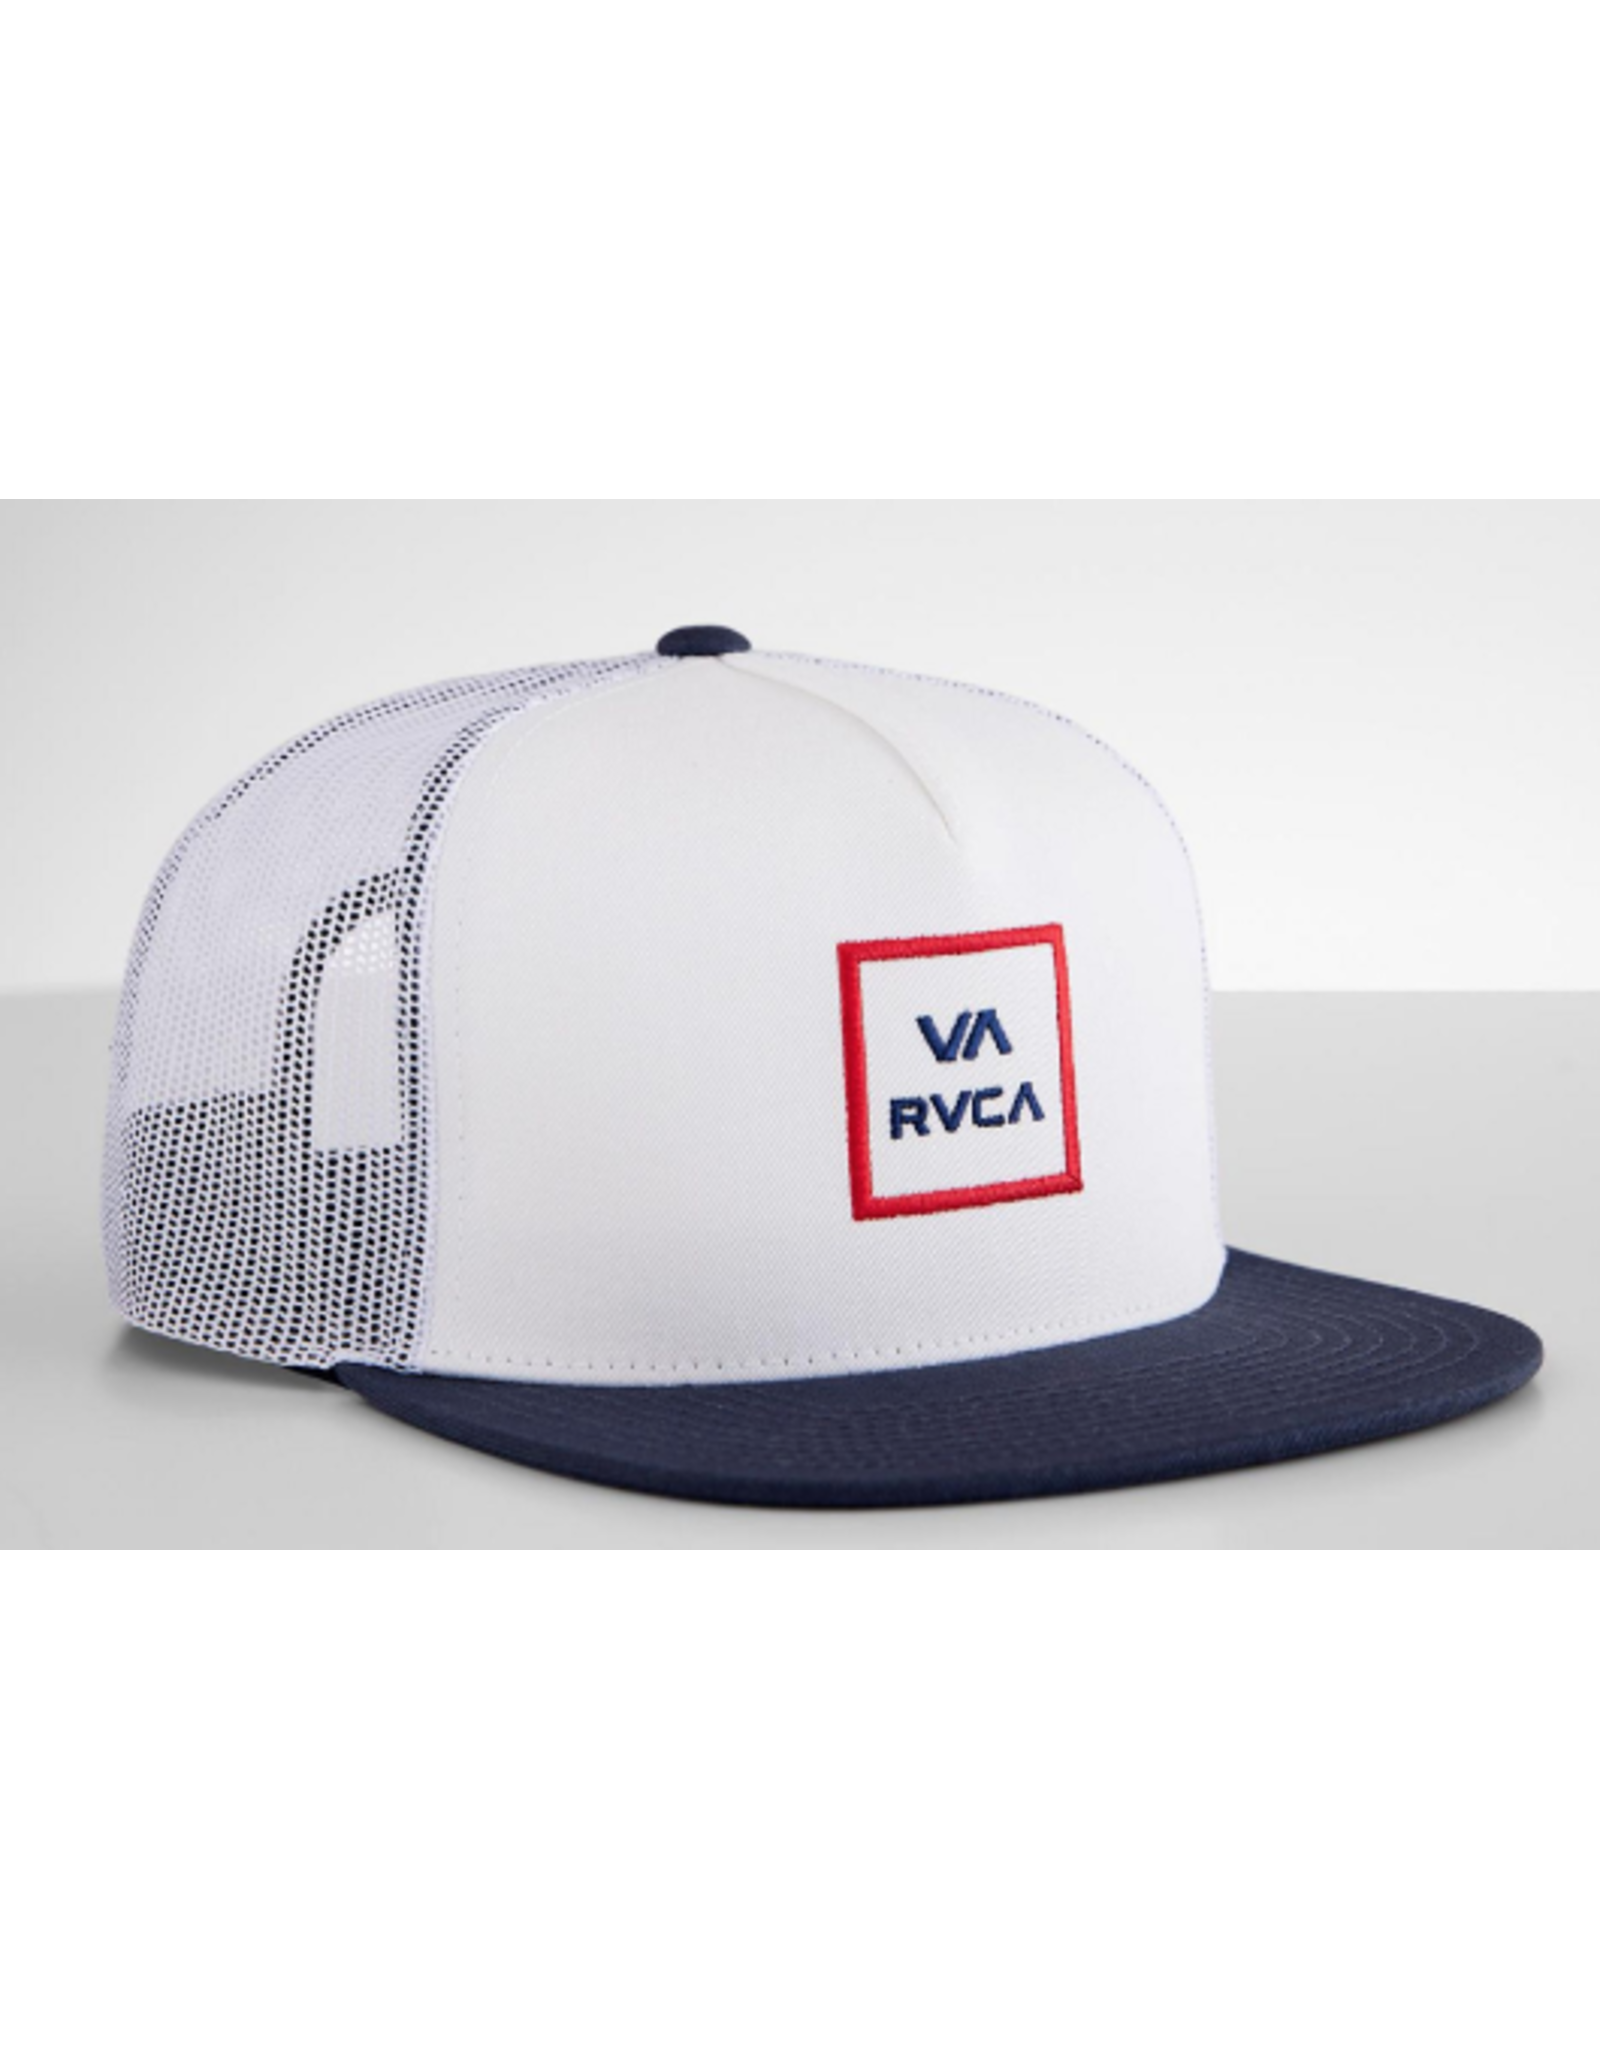 RVCA All The Way Trucker Hat<br /> All The Way Trucker Hat